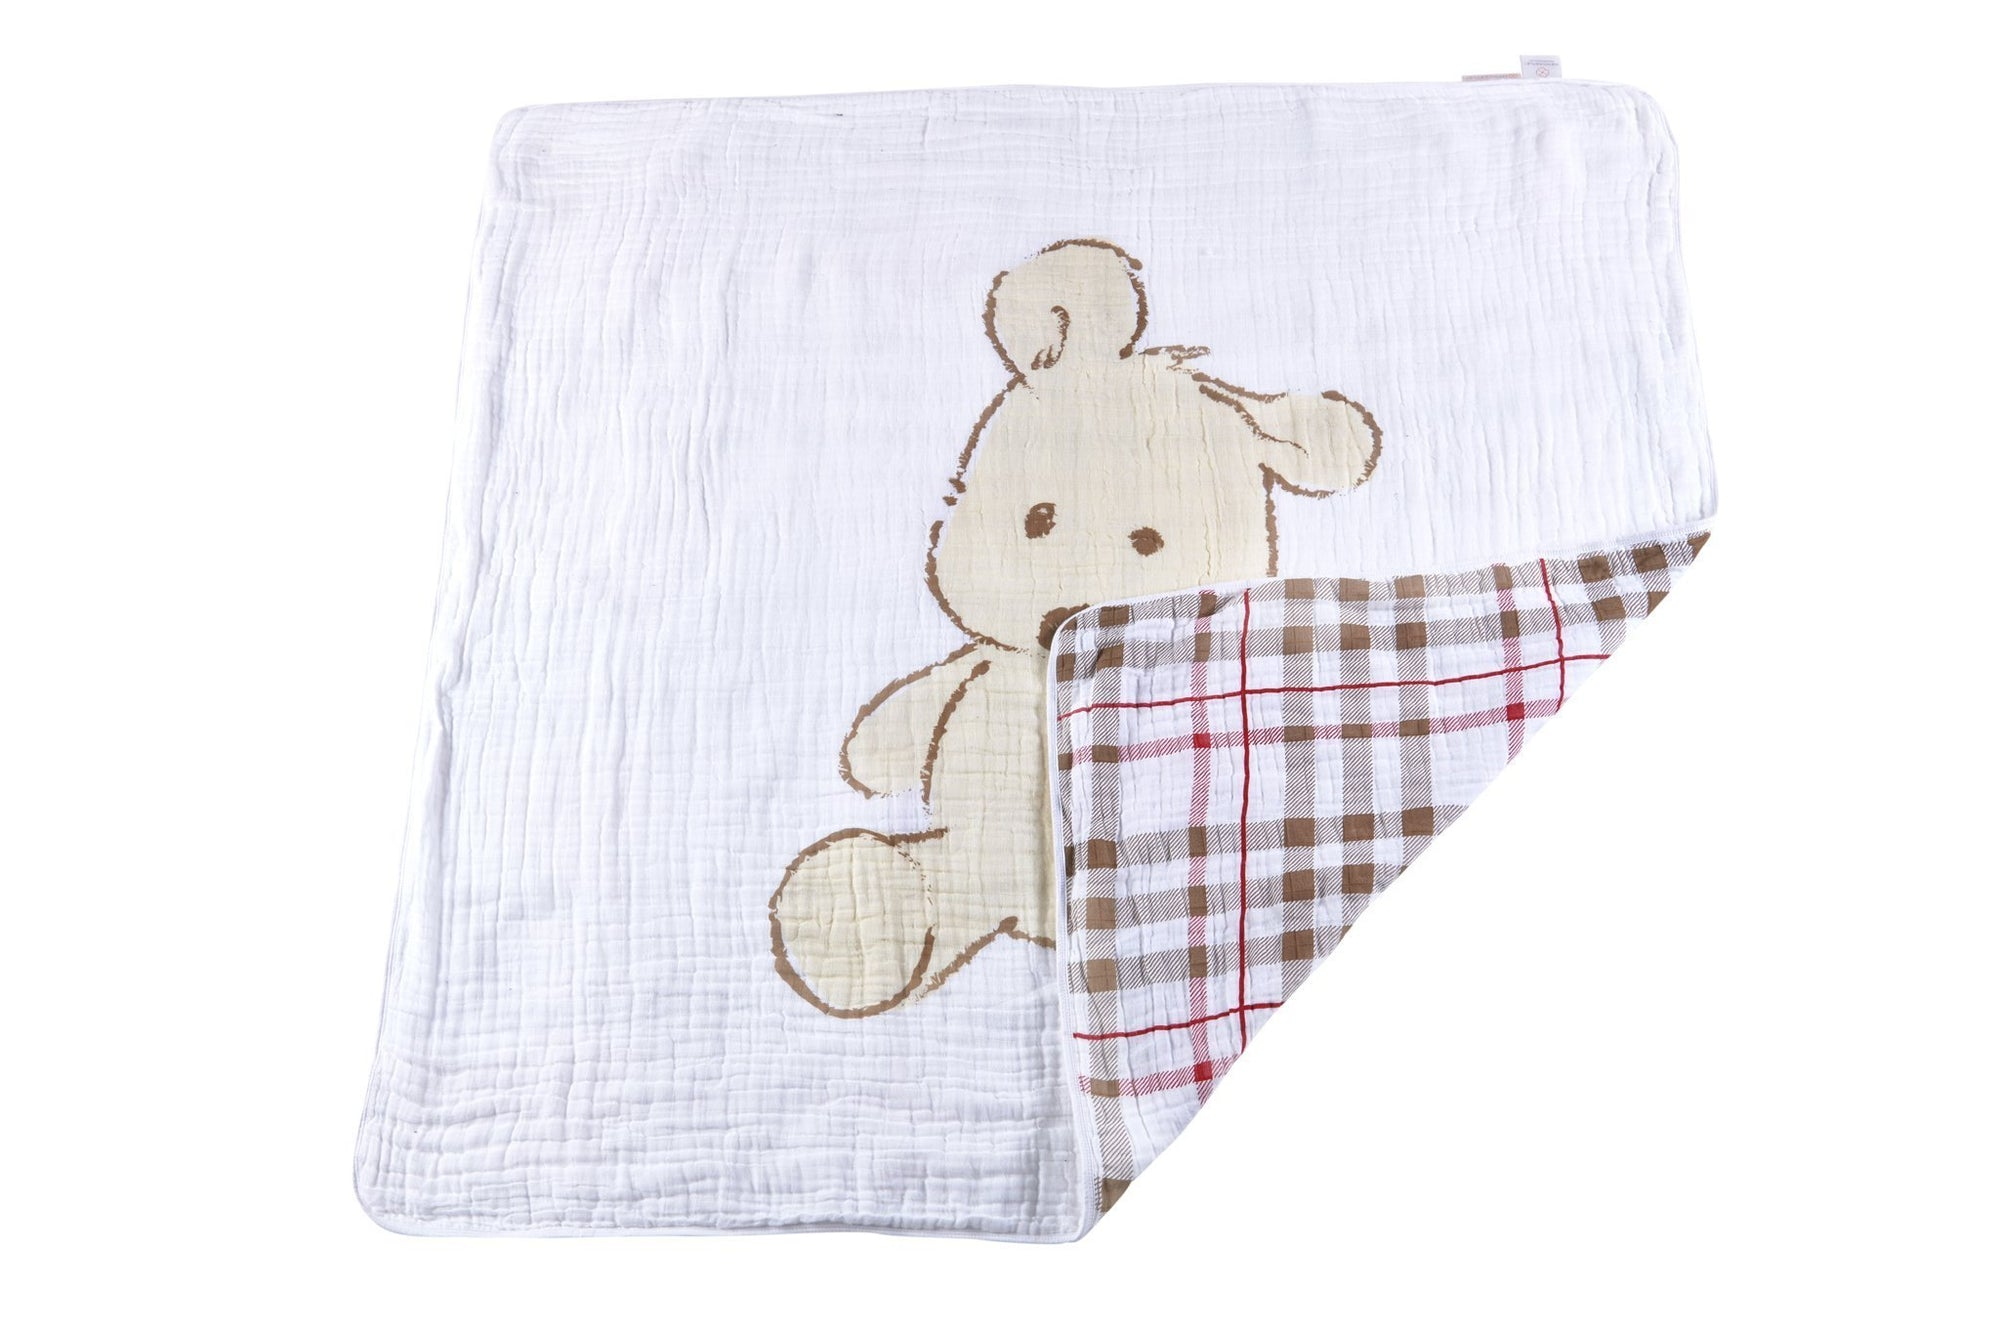 Teddy Bear & Plaid Newcastle Blanket - Baby World Inc